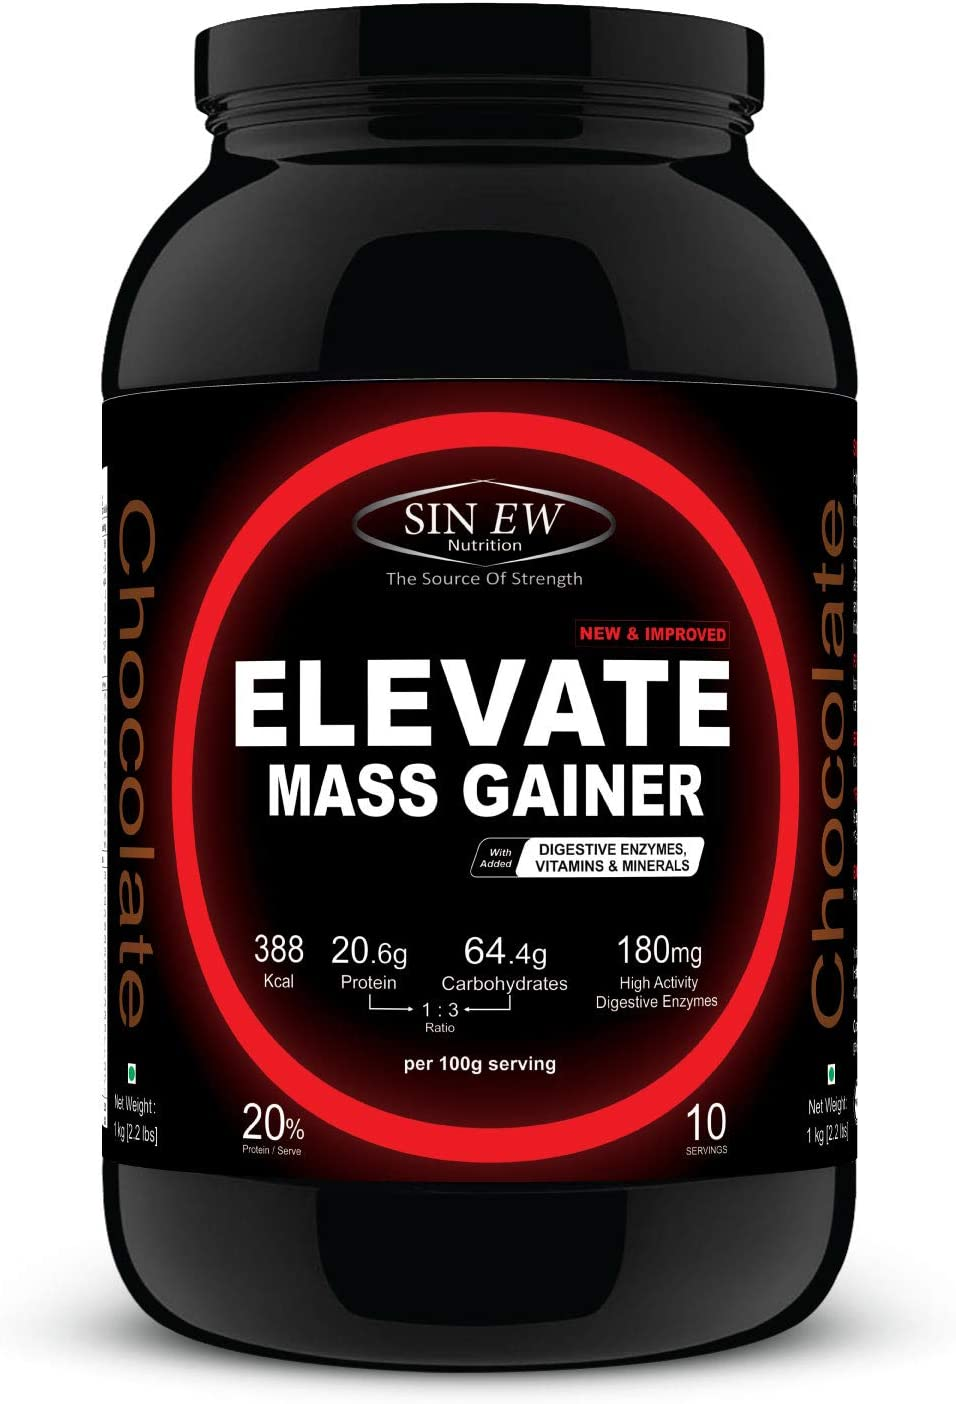 Sinew Nutrition Elevate Mass Gainer